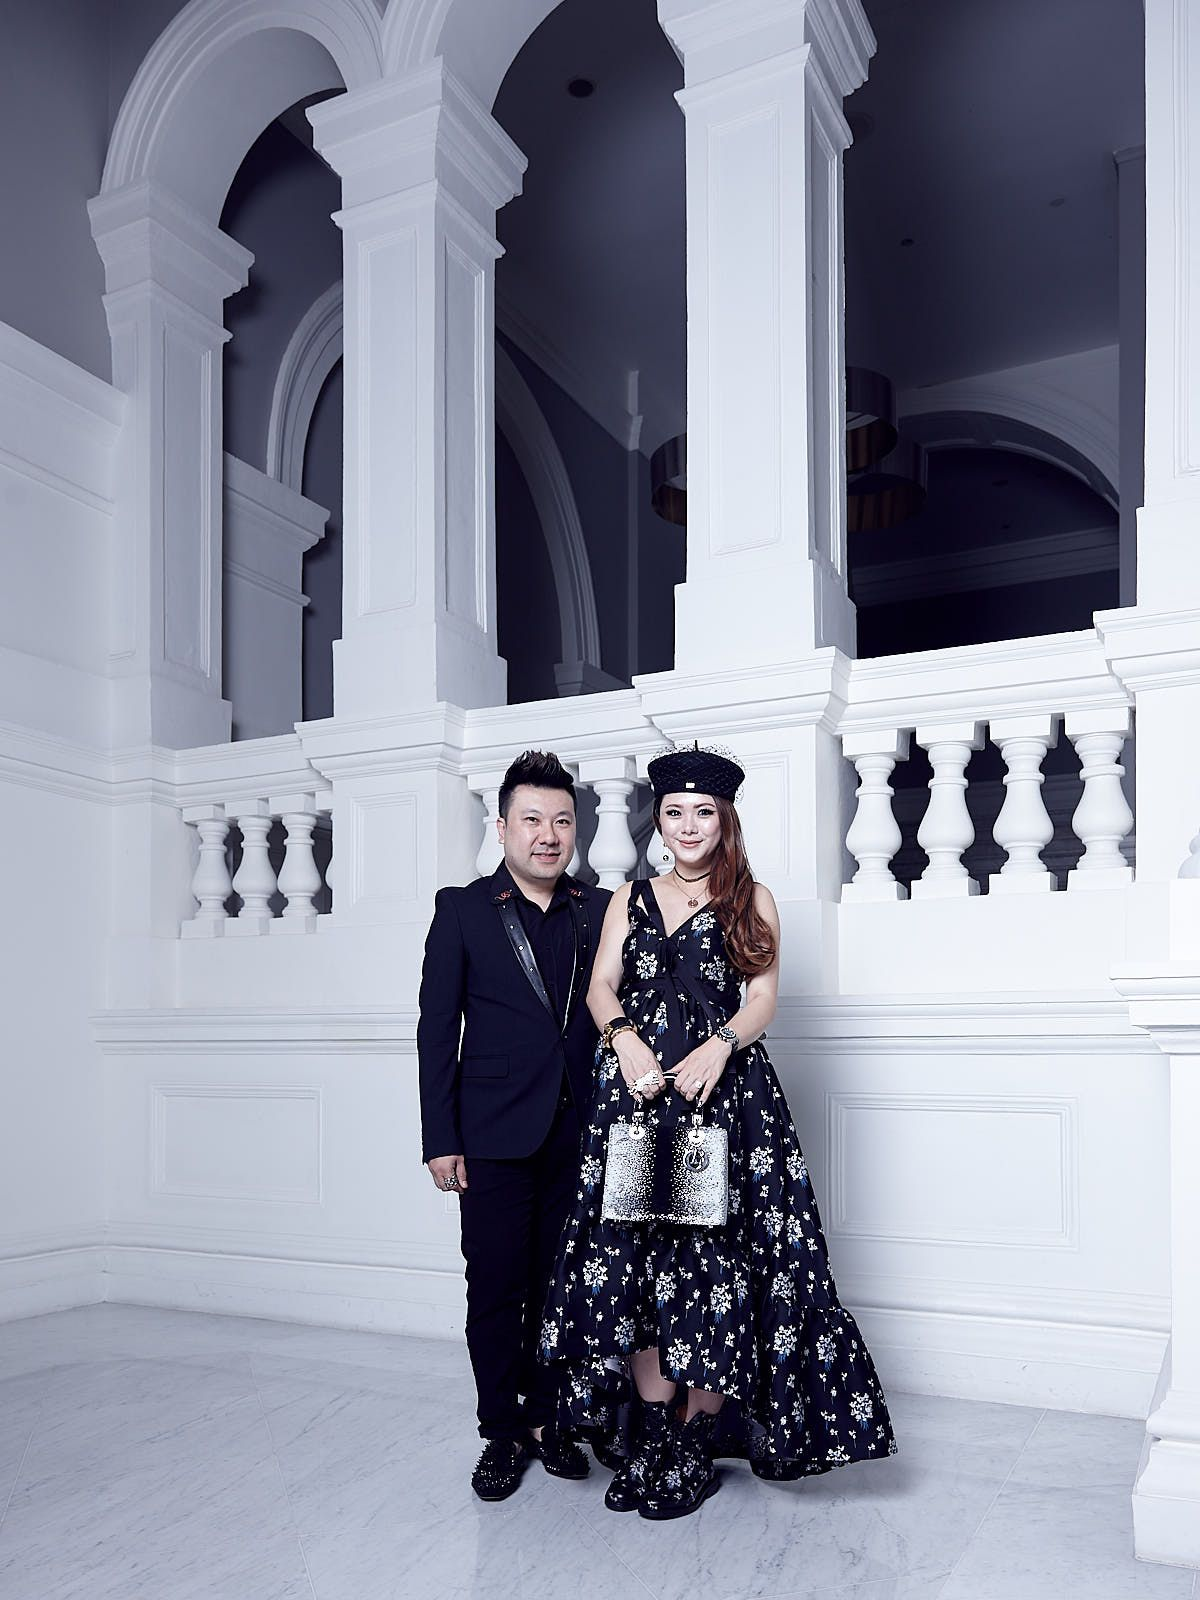 Terence Siew in Dolce & Gabbana, Chermaine Pang in Erdem x H&M